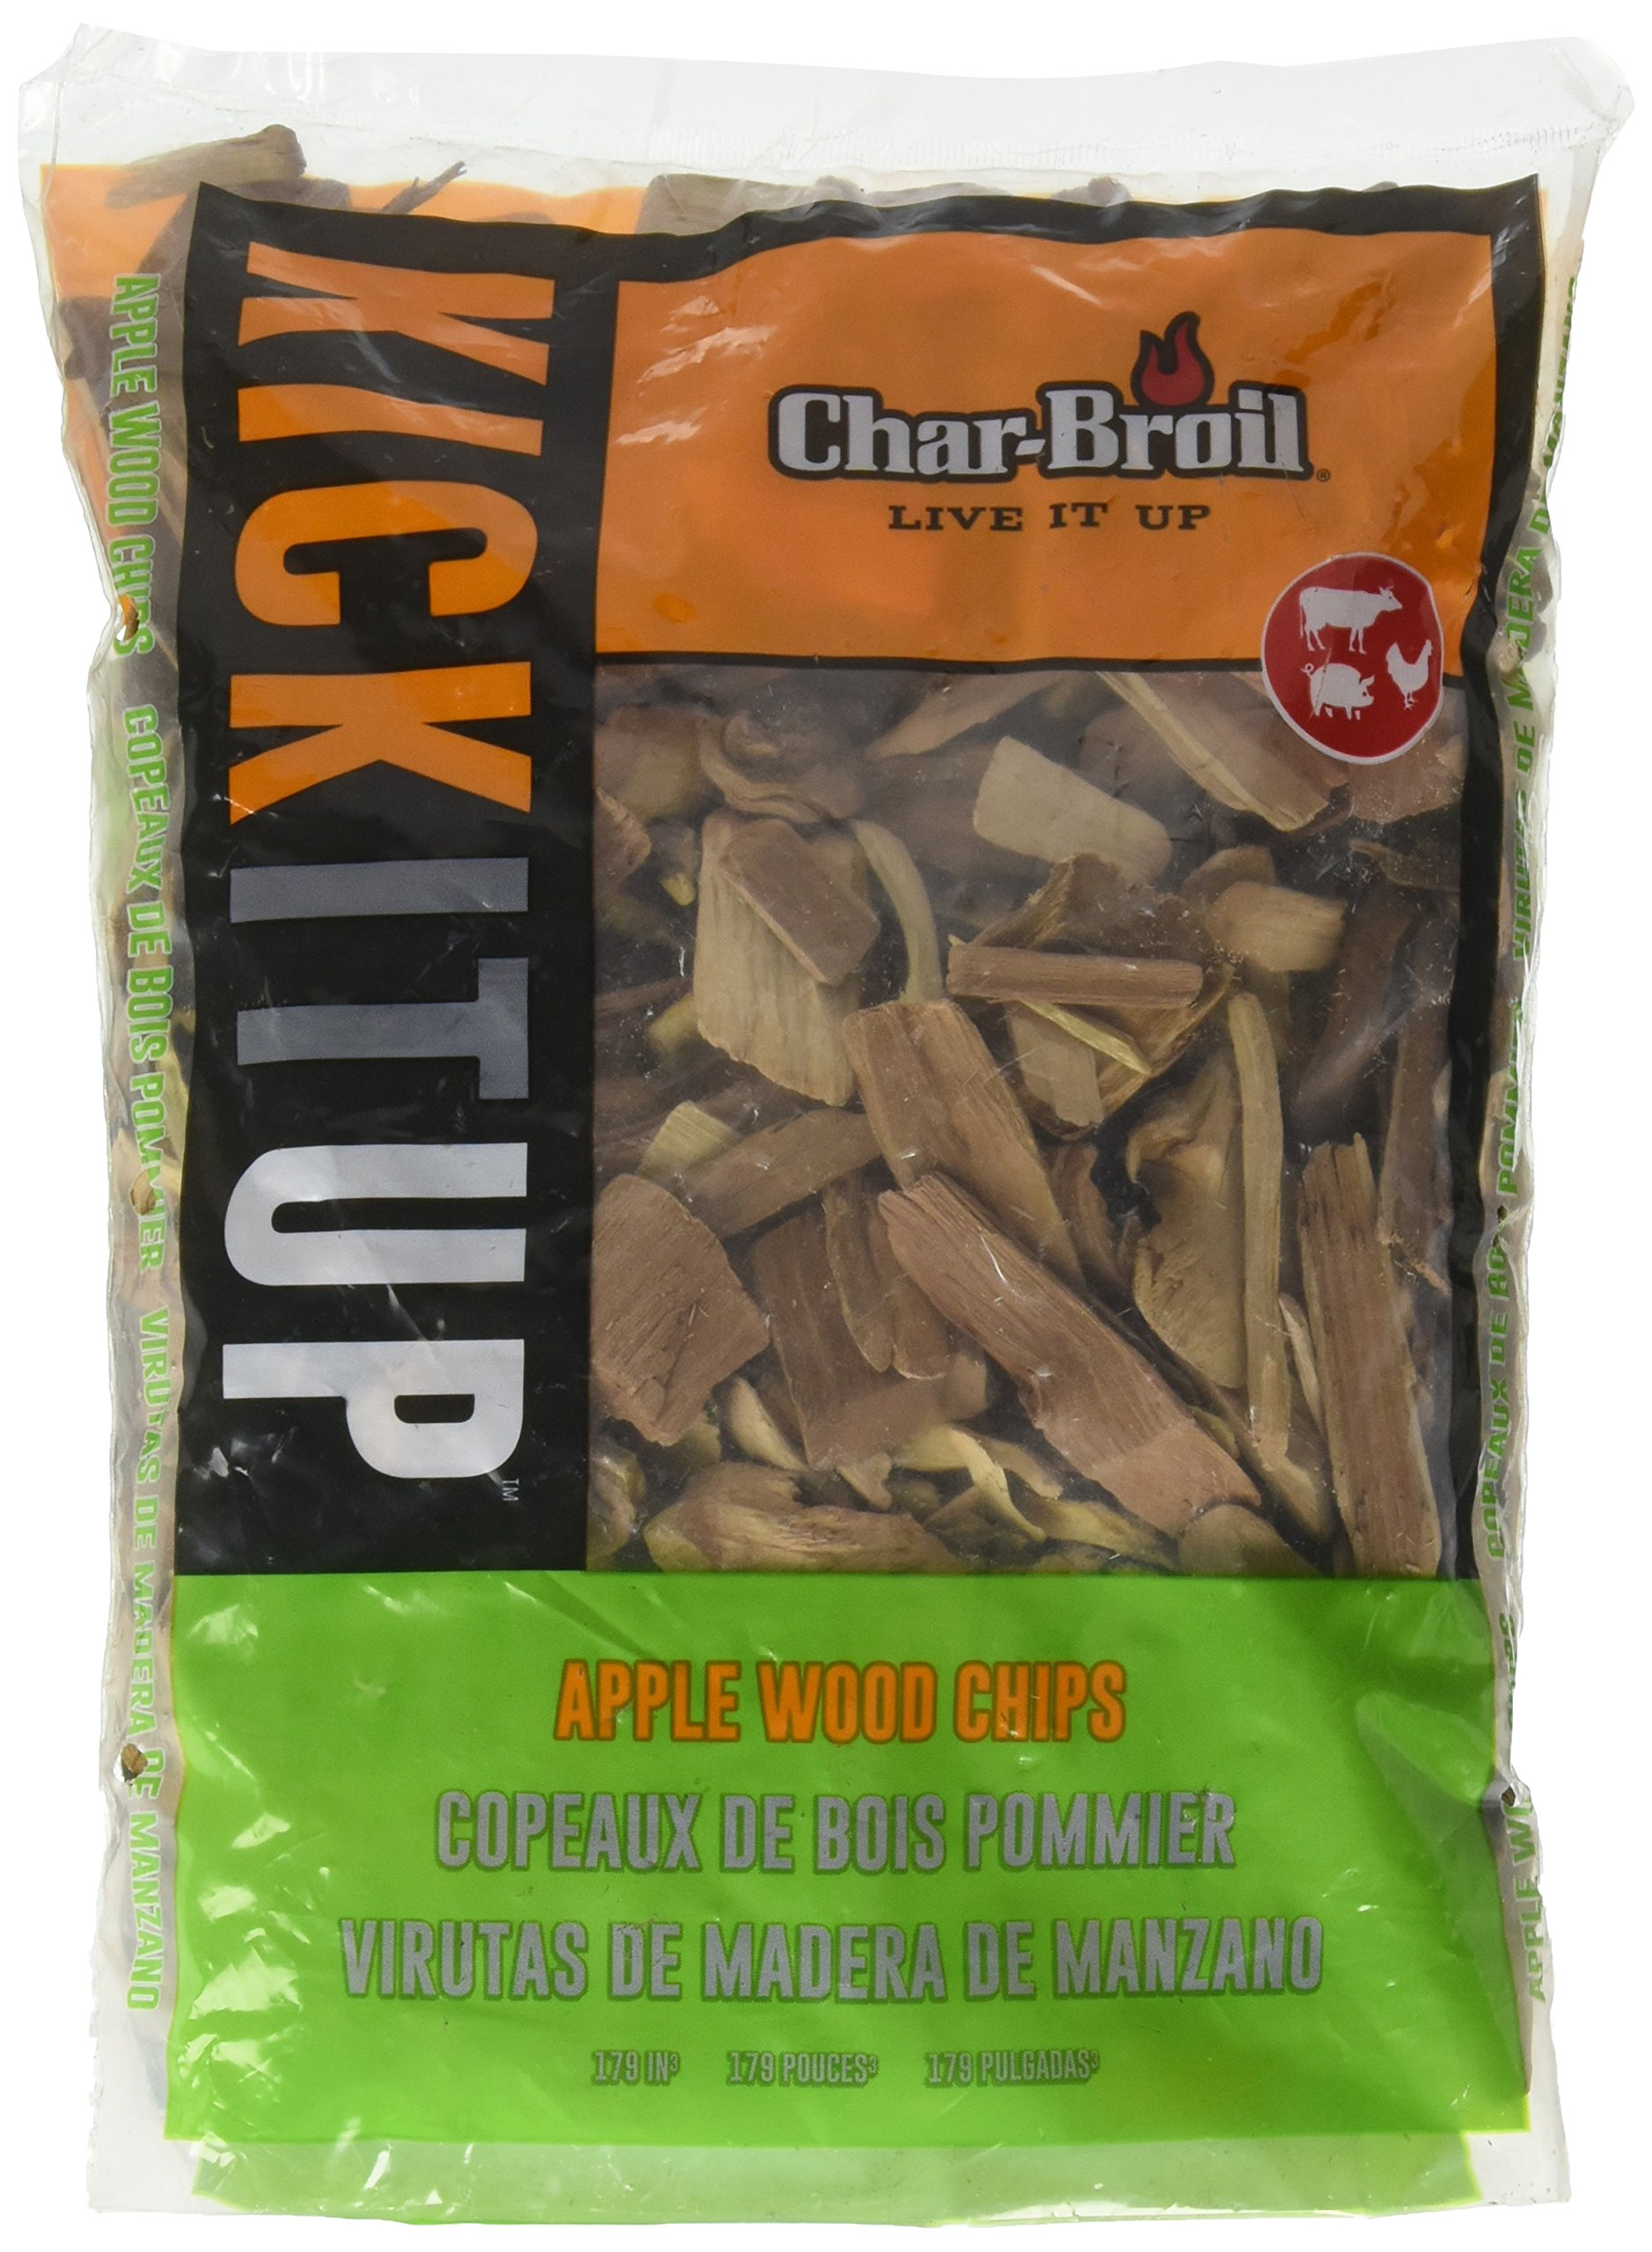 Char-Broil Apple Wood Smoker Chips, 2-Pound Bag by Char-Broil